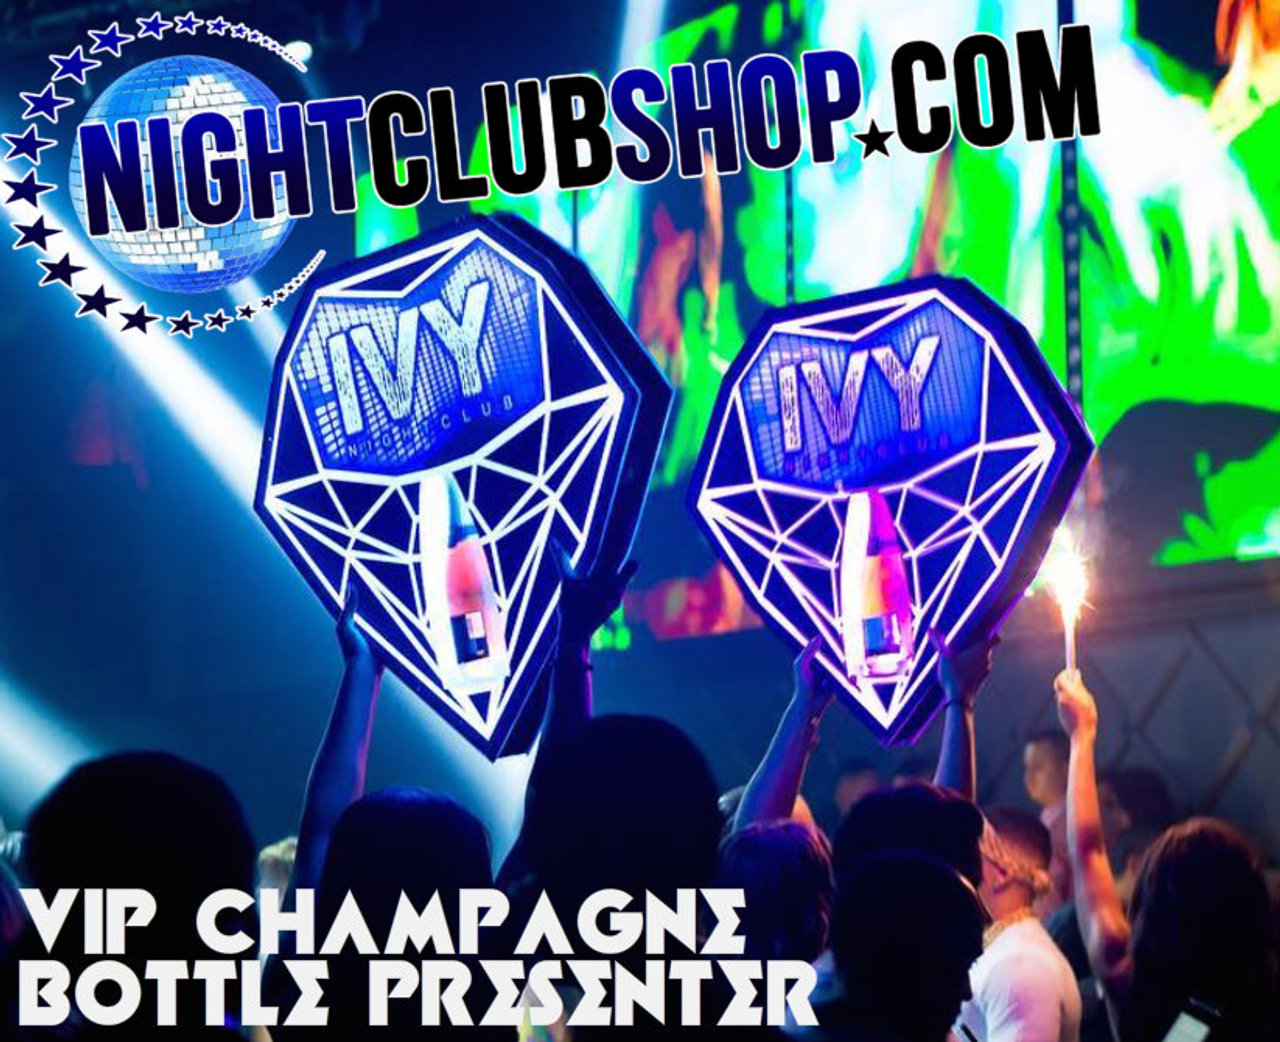 Monthly, Service,Plan, Nightclubshop, Bottle, Service, Delivery, Presenter, Presentation, Caddy, LED,VIP,Tray,Nightclub,custom,carrier,holder,club